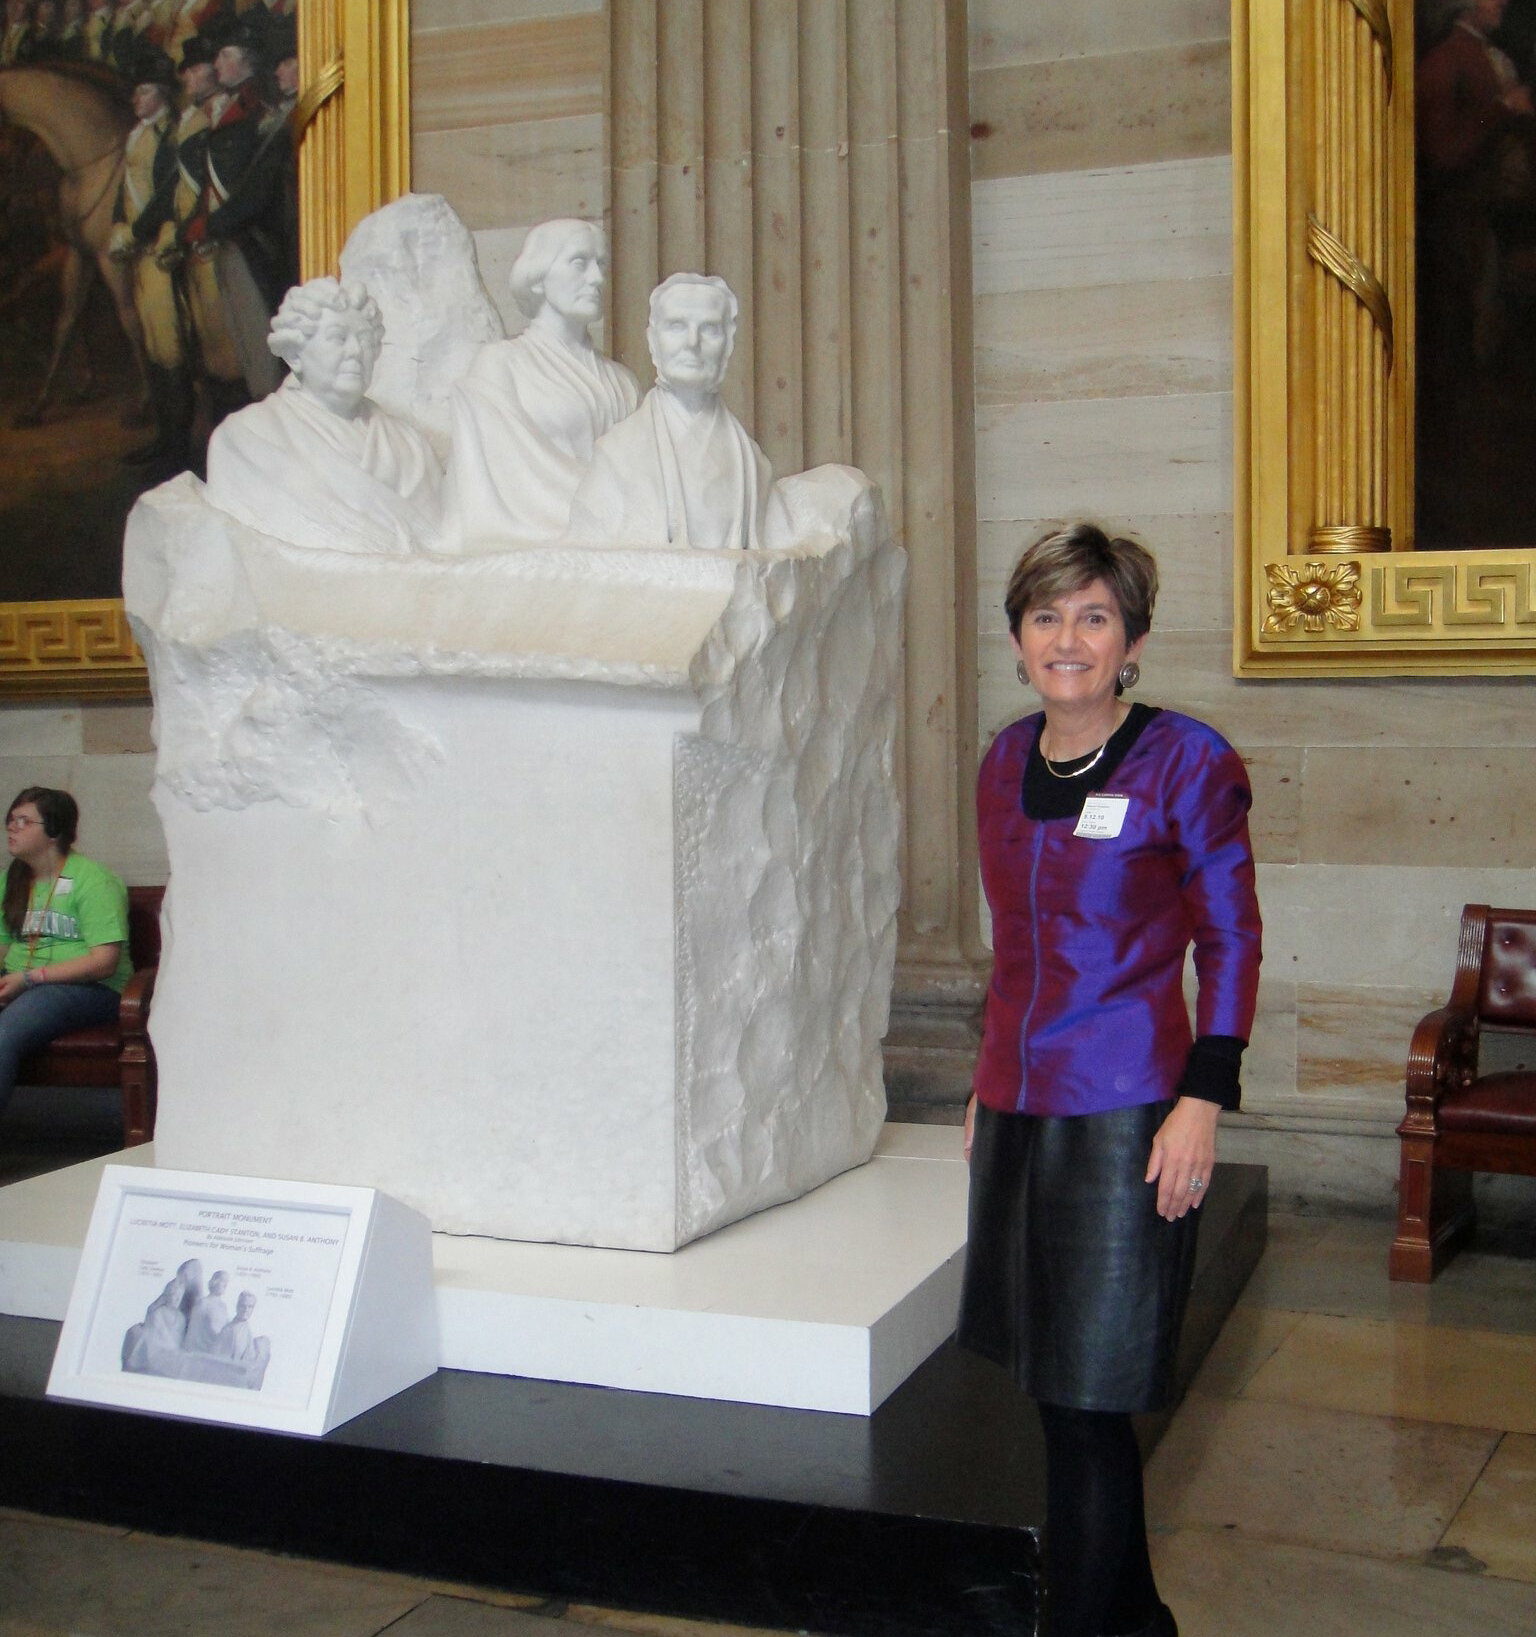 Kathryn Anthony with the group portrait monument to the pioneers of the woman suffrage movement at the US Capitol.